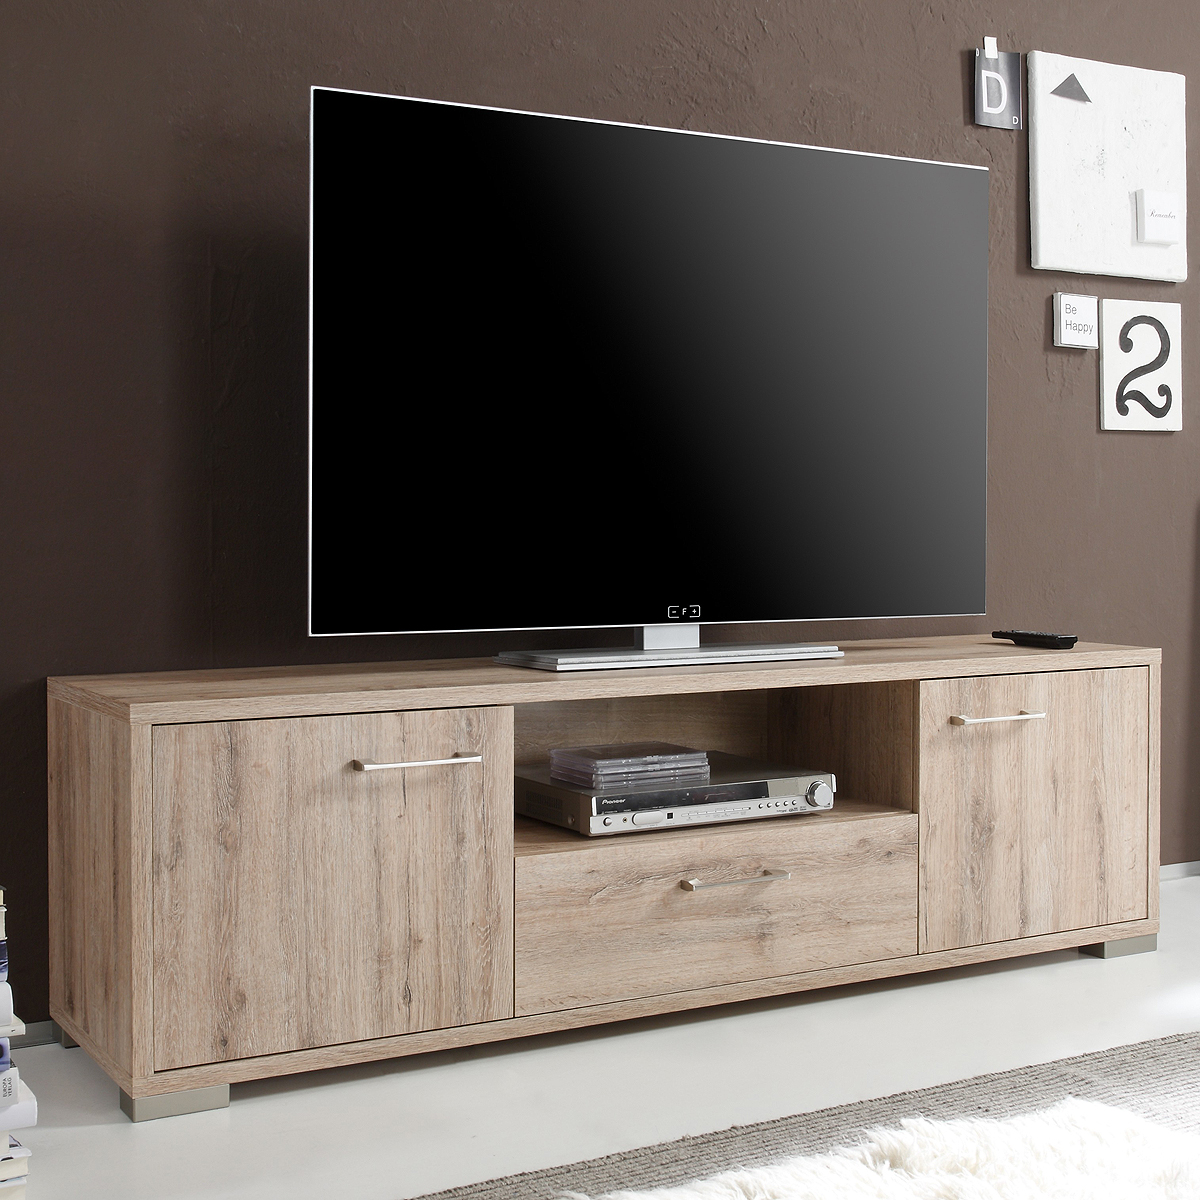 lowboard medi 3 in san remo eiche hell tv board wohnzimmer media m bel ebay. Black Bedroom Furniture Sets. Home Design Ideas